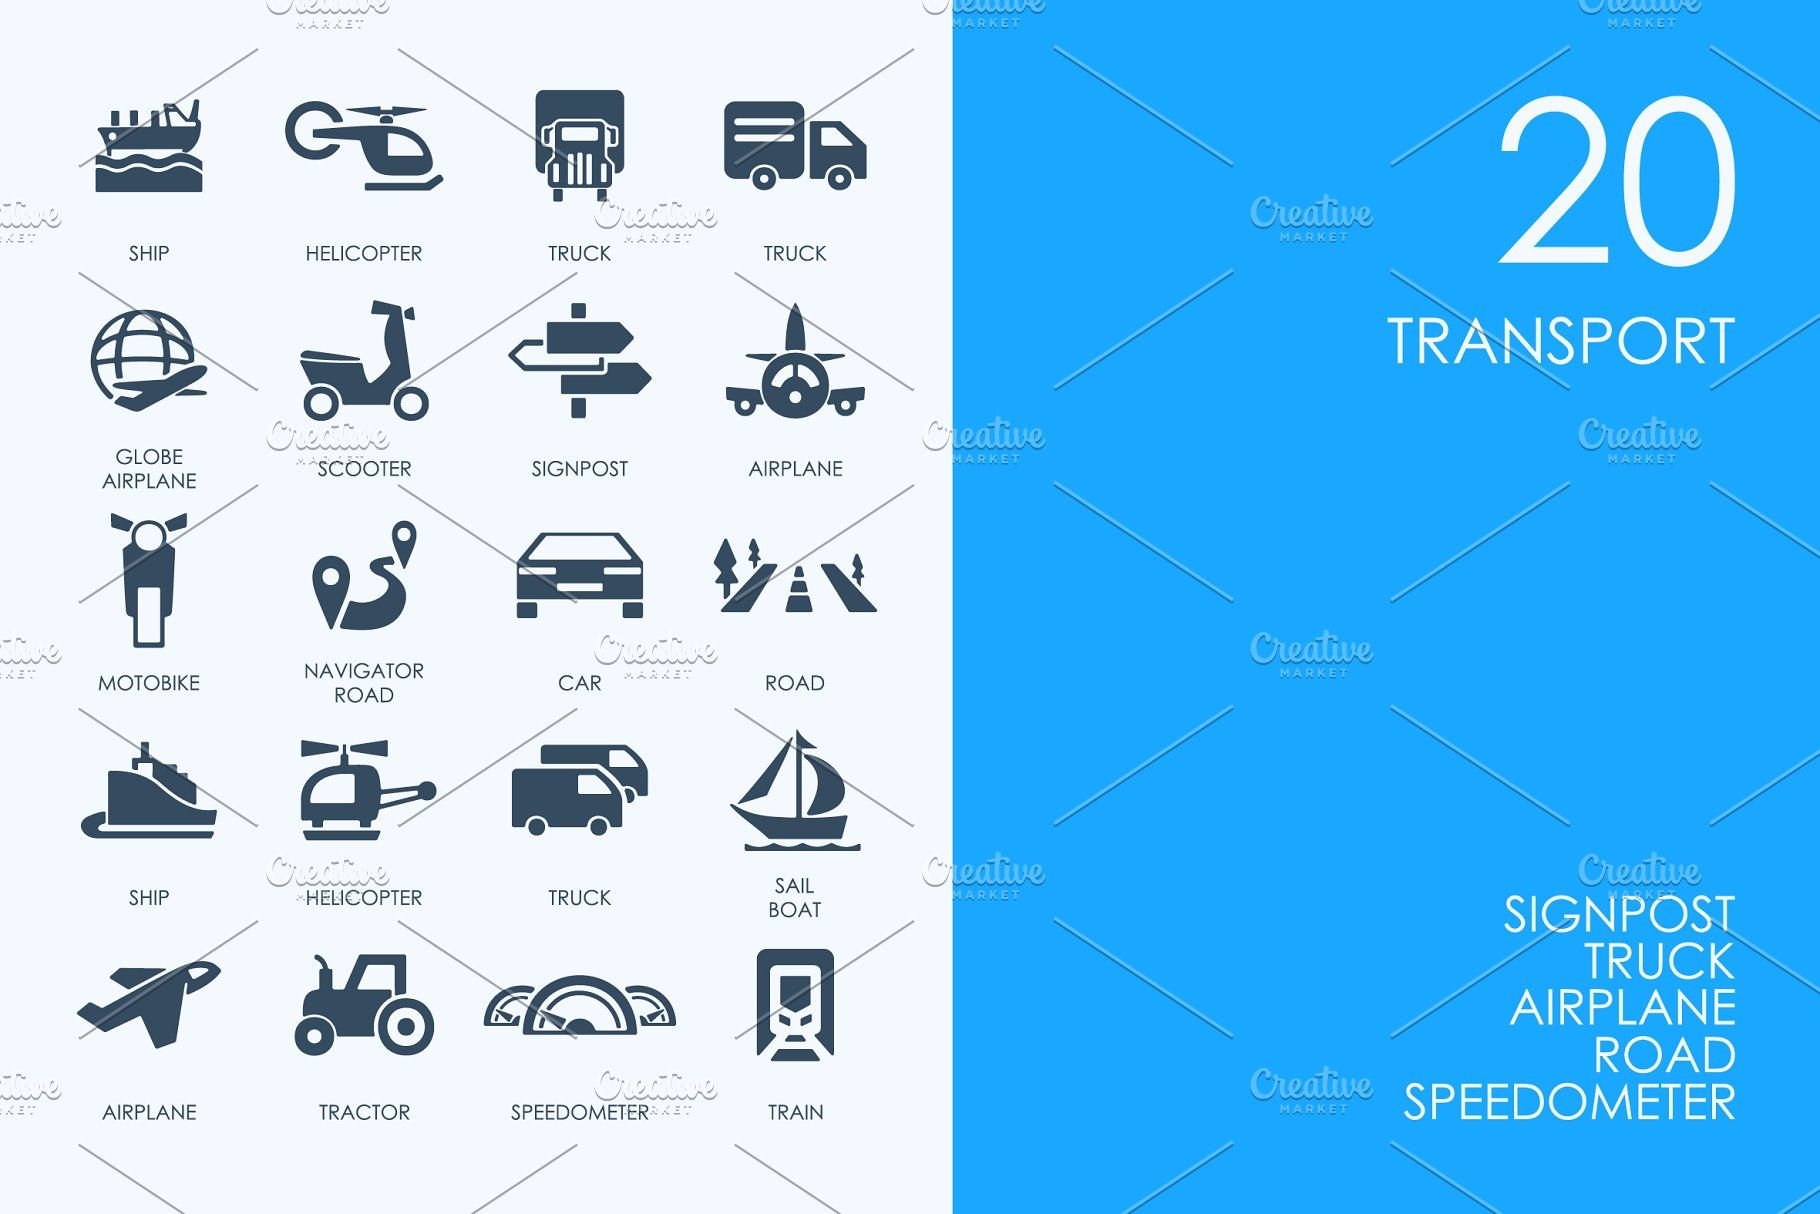 Transport icons TransporticonsIcons Templates